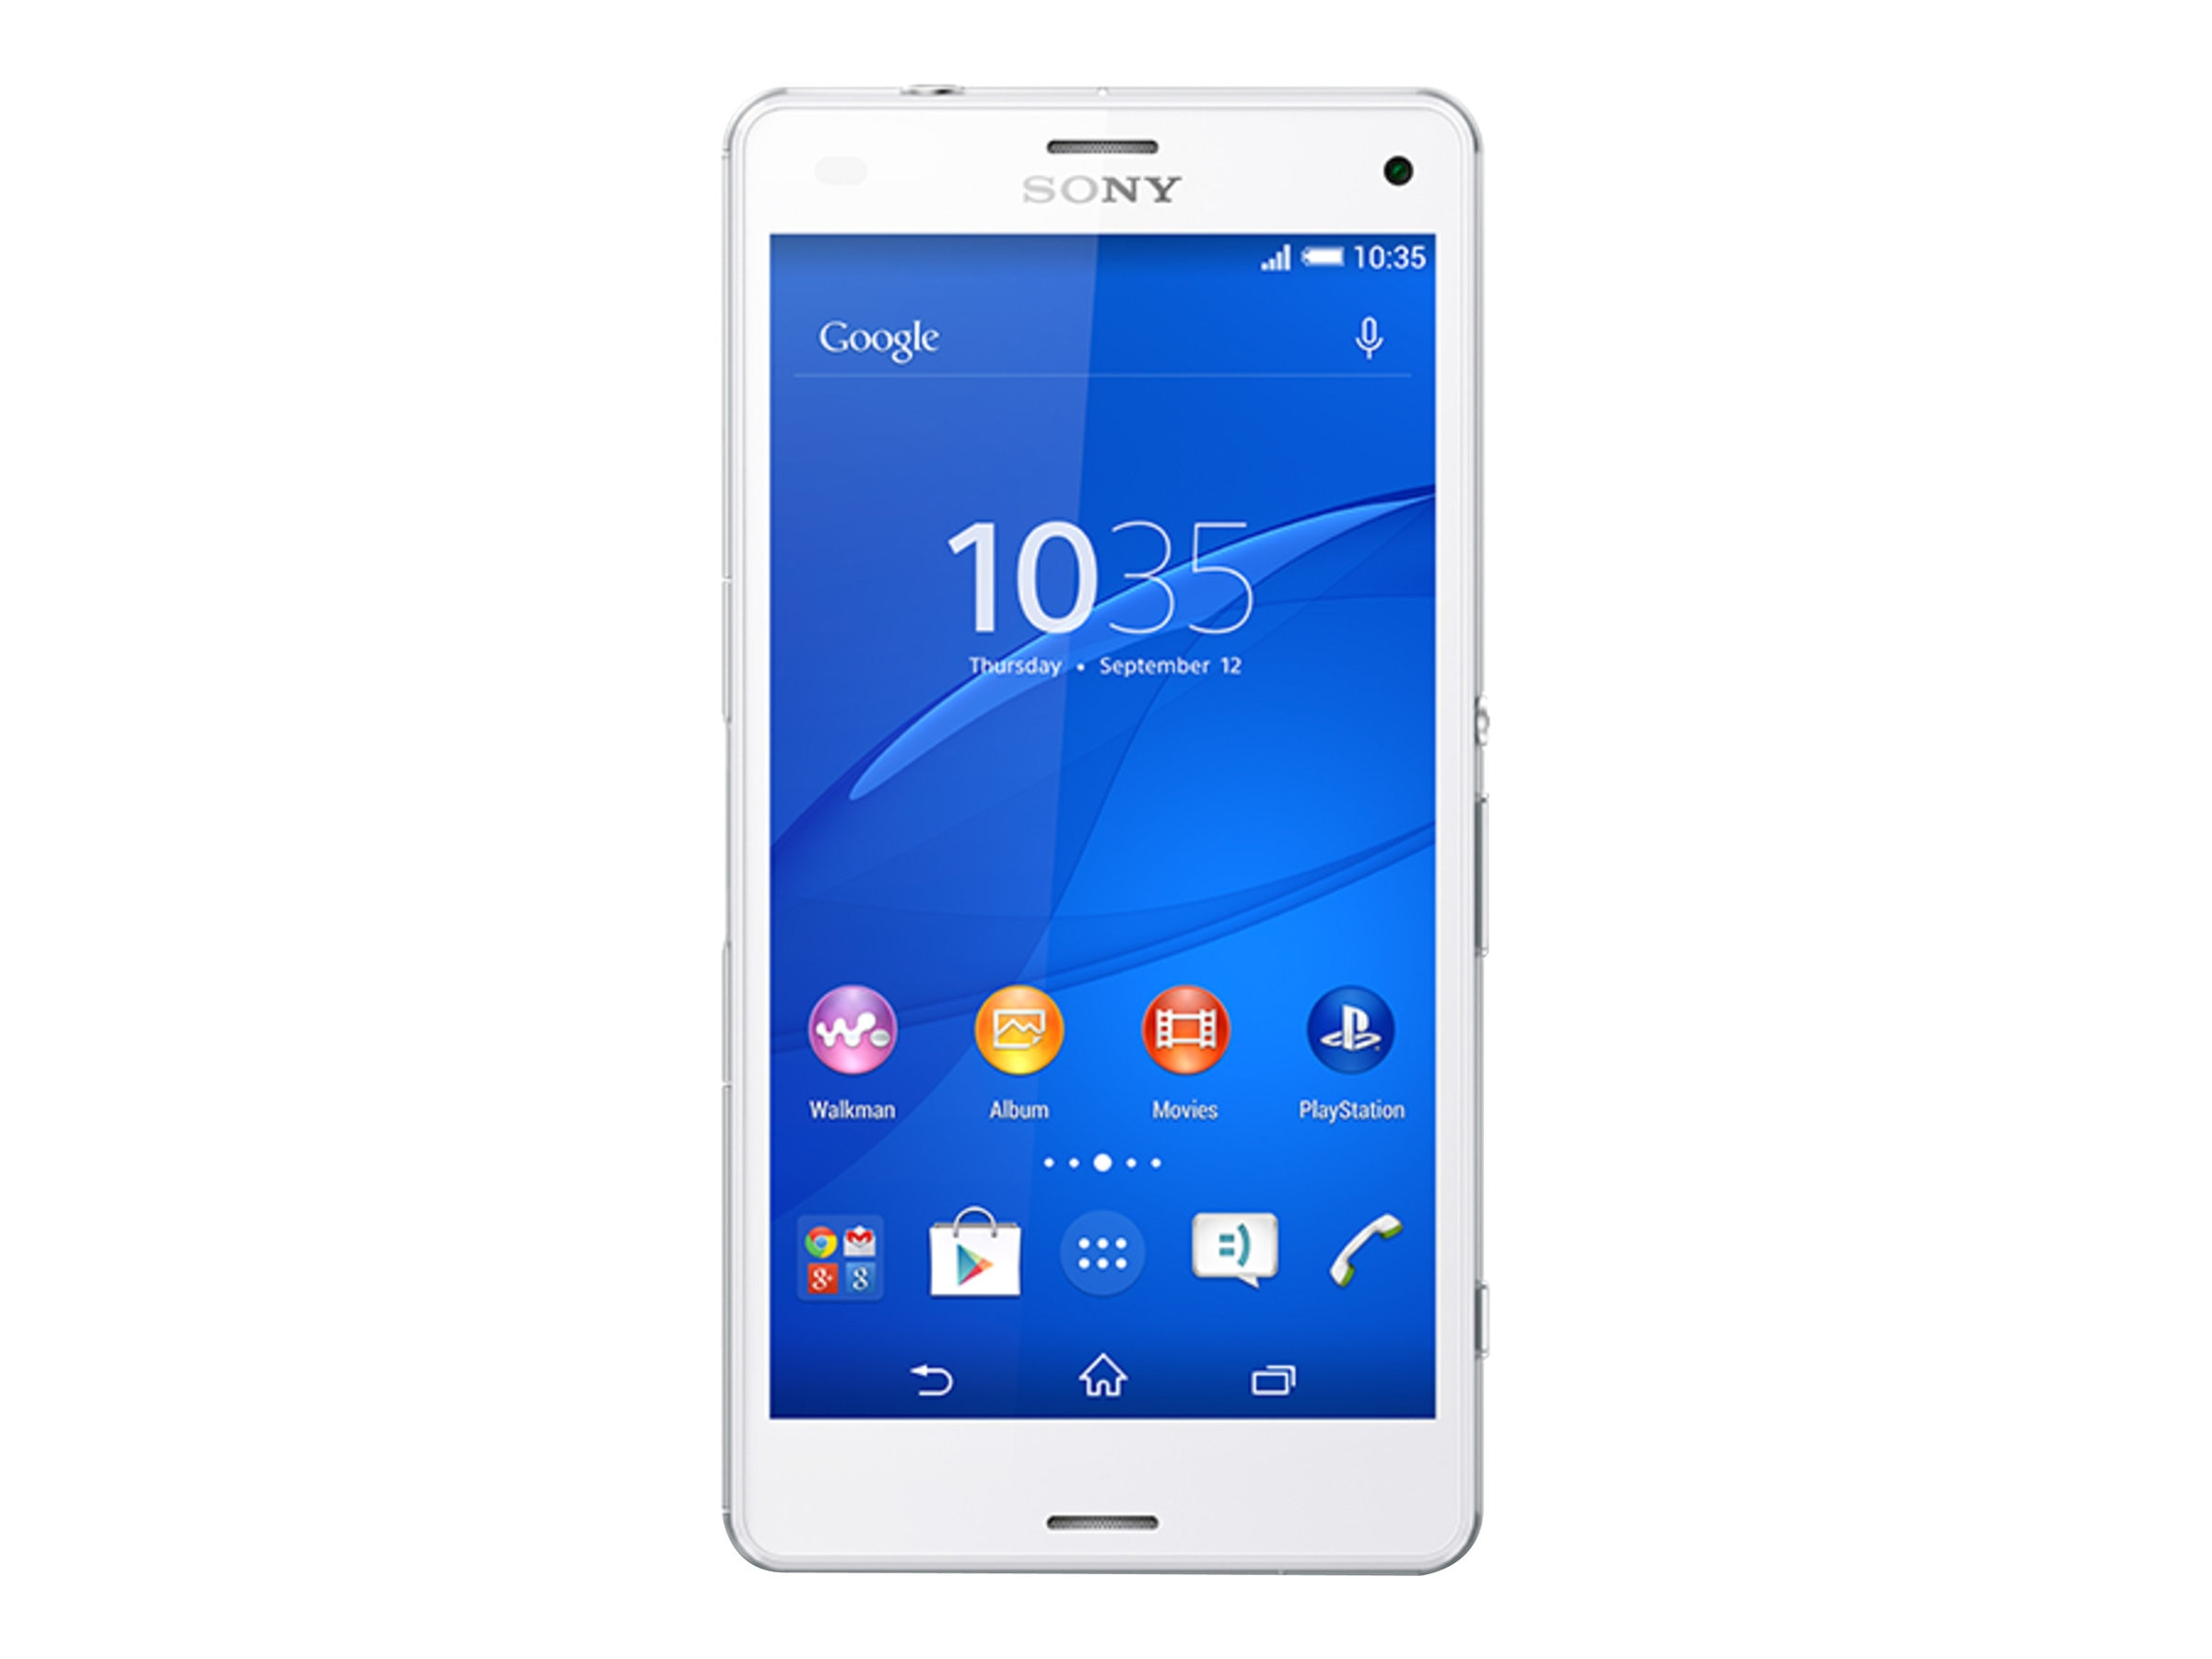 Sony XPeria Z3 Compact LTE D5803 4.6 2.5GHZ 4CR 16GB 20.7MP NFC Phone - White